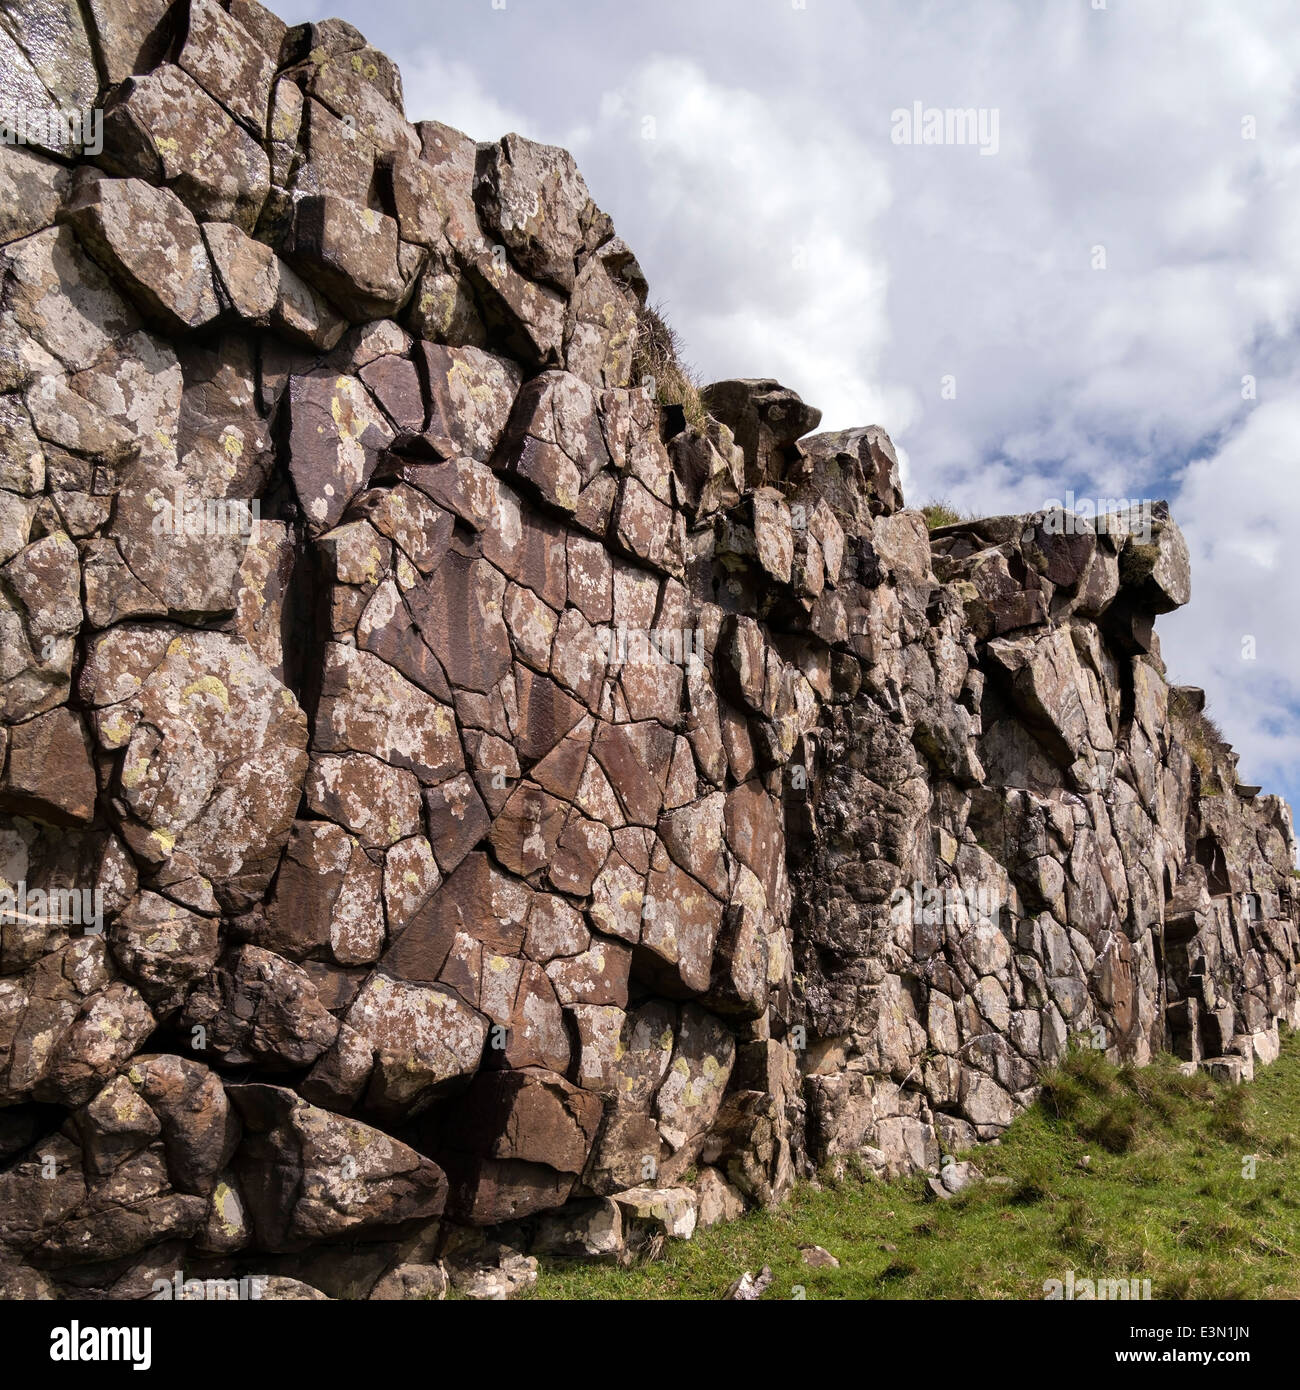 Exposed eroded rock wall dyke of igneous Palaeogene basalt intrusion, Rubha an Dunain, Isle of Skye, Scotland, UK - Stock Image